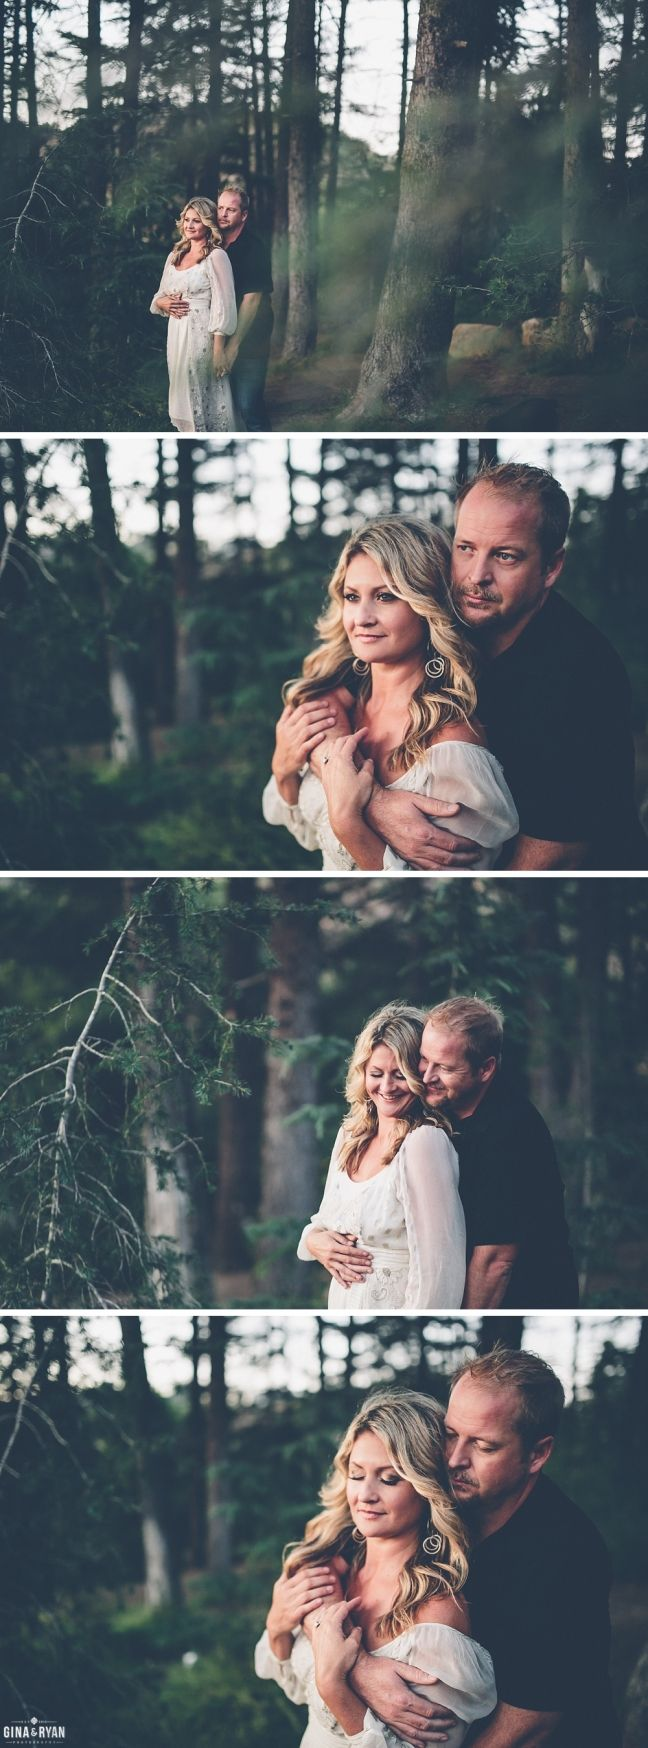 Woodsy Engagement Photos | Bohemian Bride | Whimsical Engagement Session | Forrest Engagement | Los Angeles Engagement Photography | www.GinaAndRyan.com